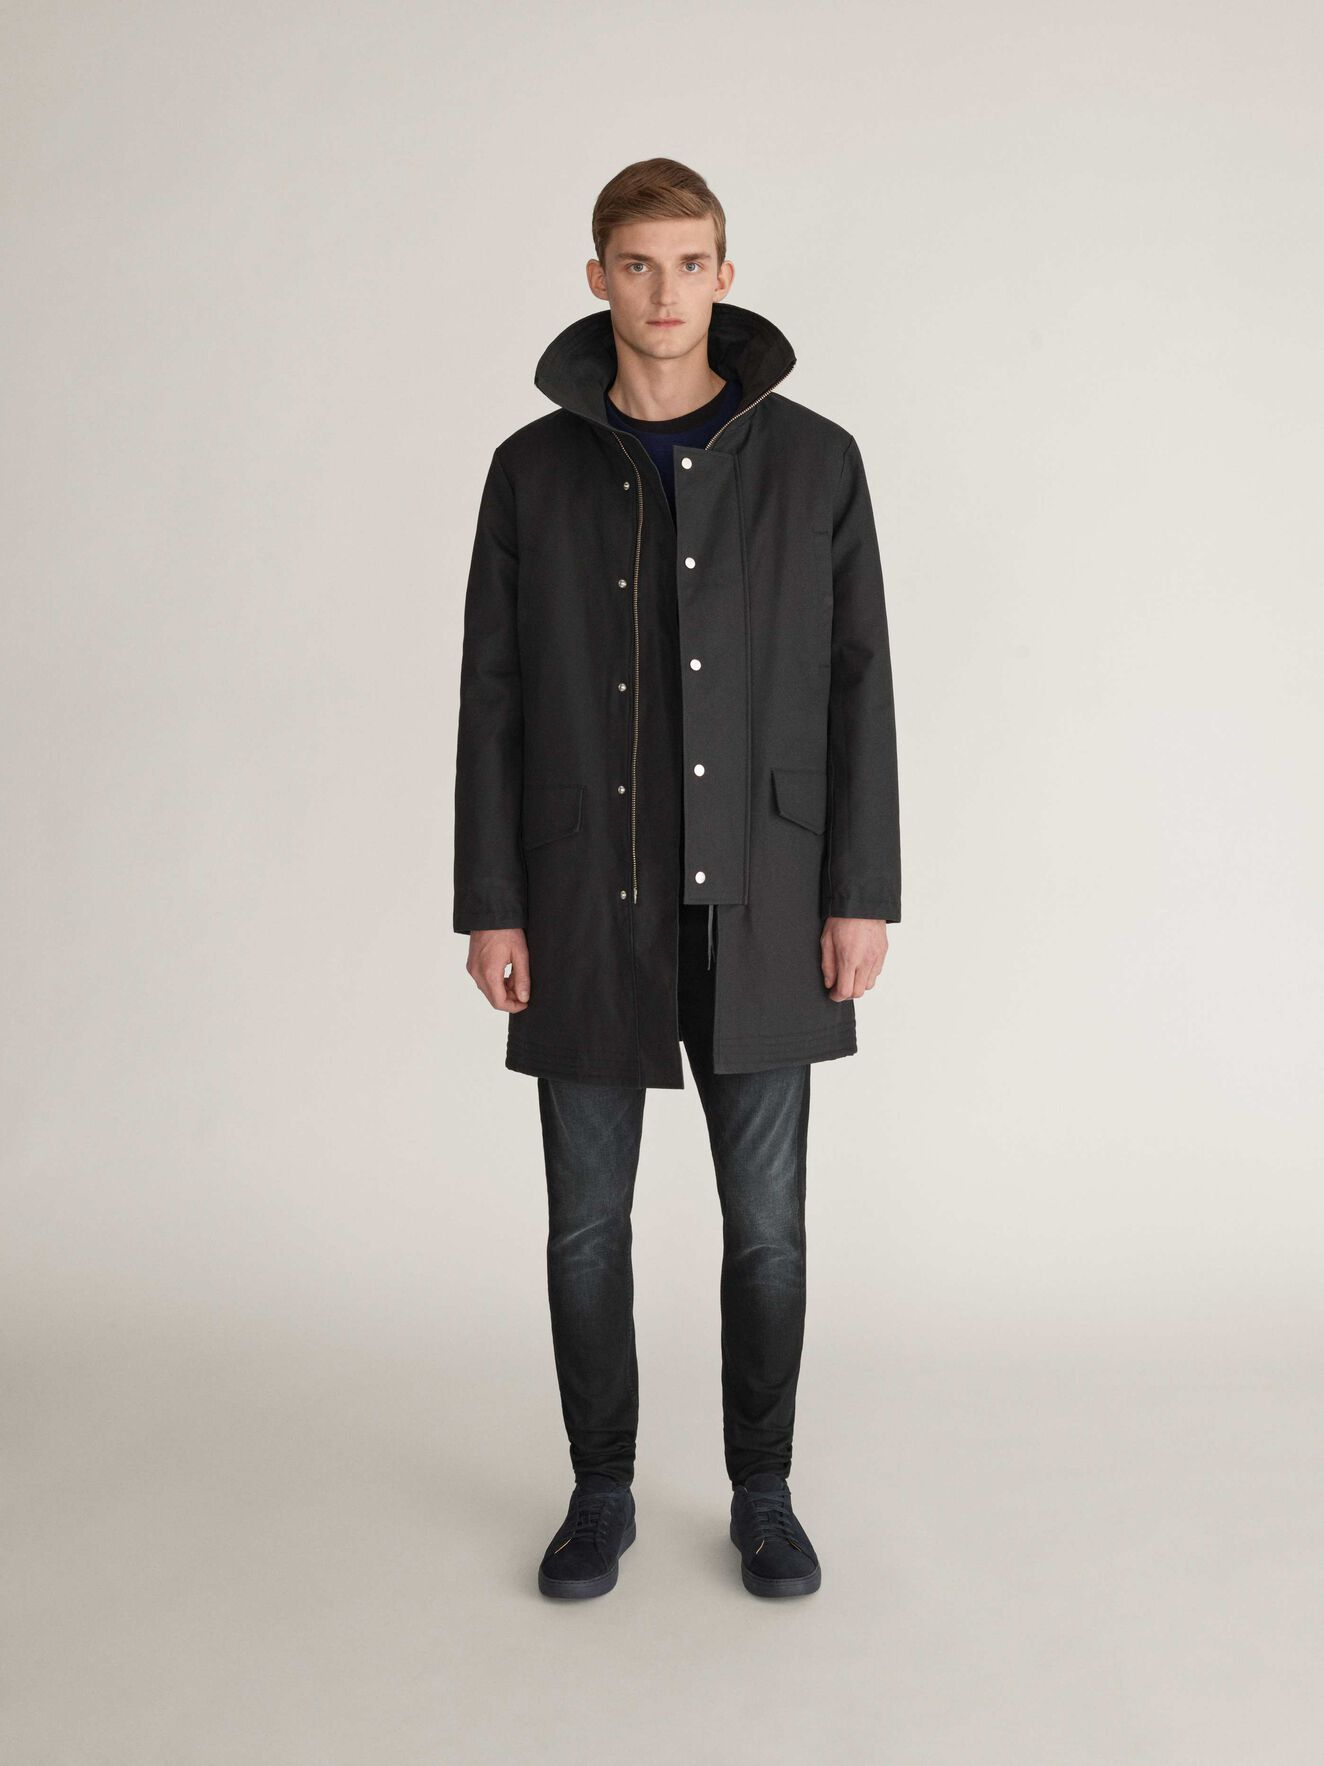 Contract Parka in Black from Tiger of Sweden